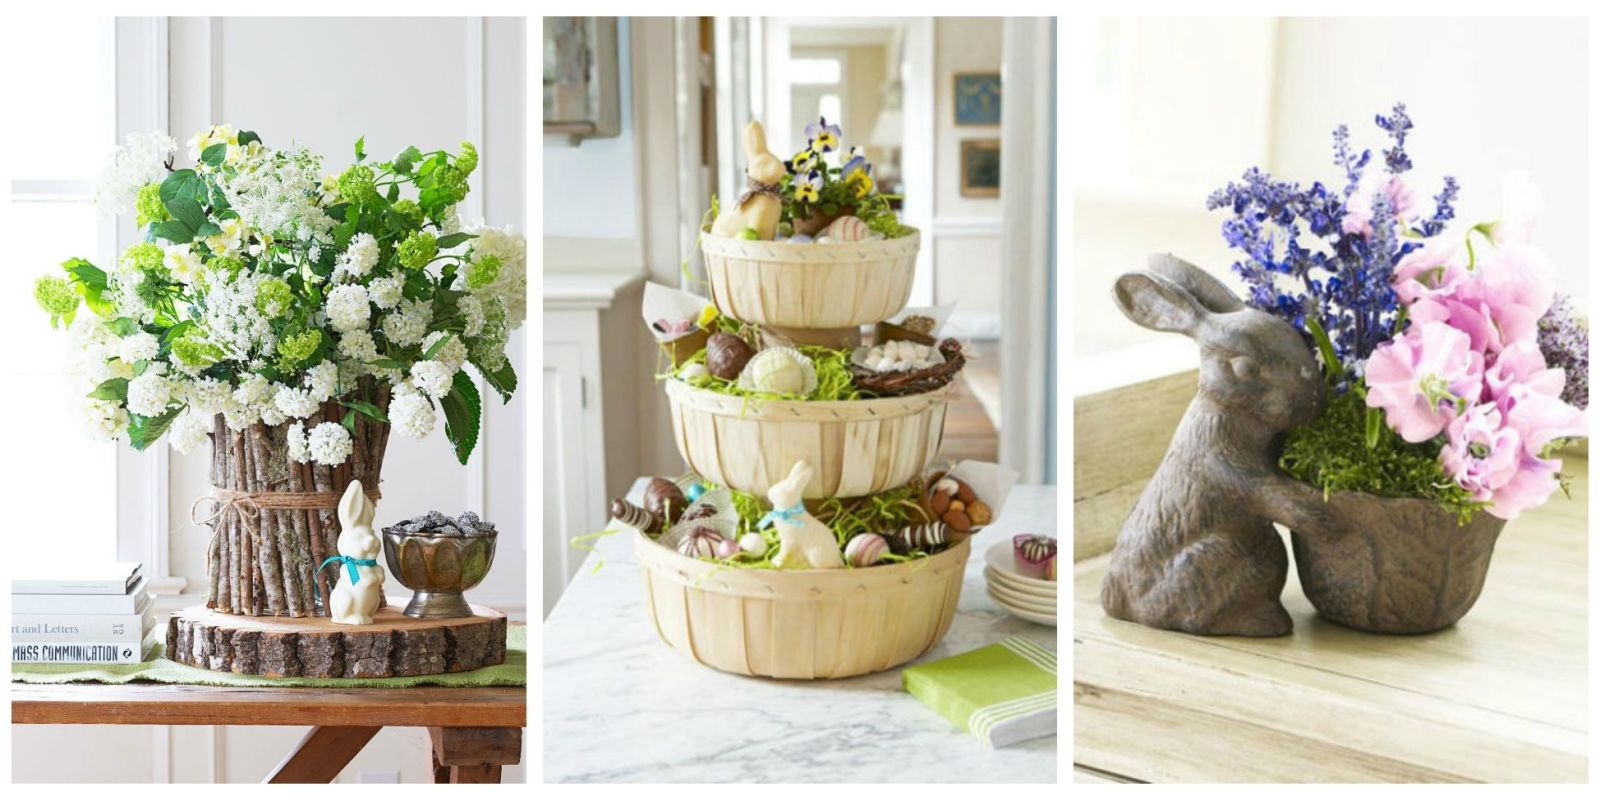 70 diy easter decorations ideas for homemade easter for Easter home decorations